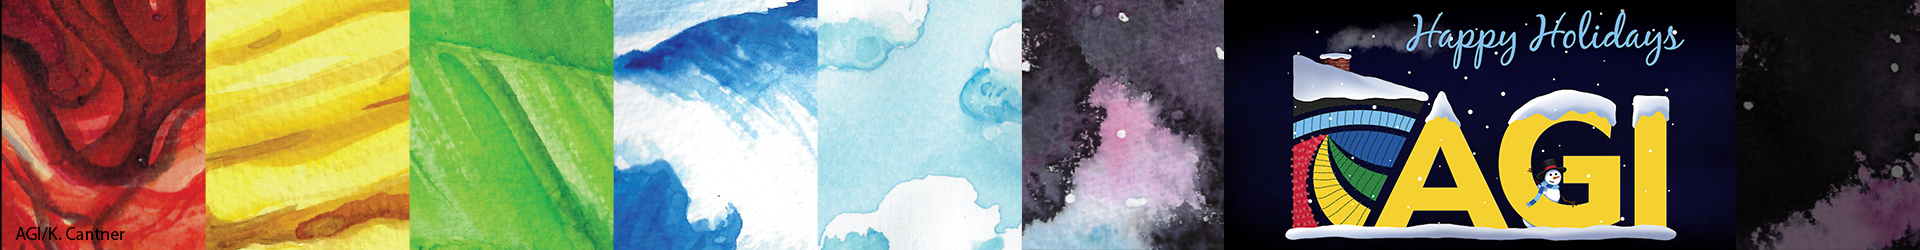 AGI graphic representing parts of the Earth system and a winter holiday version of the AGI logo. Images by K. Cantner.